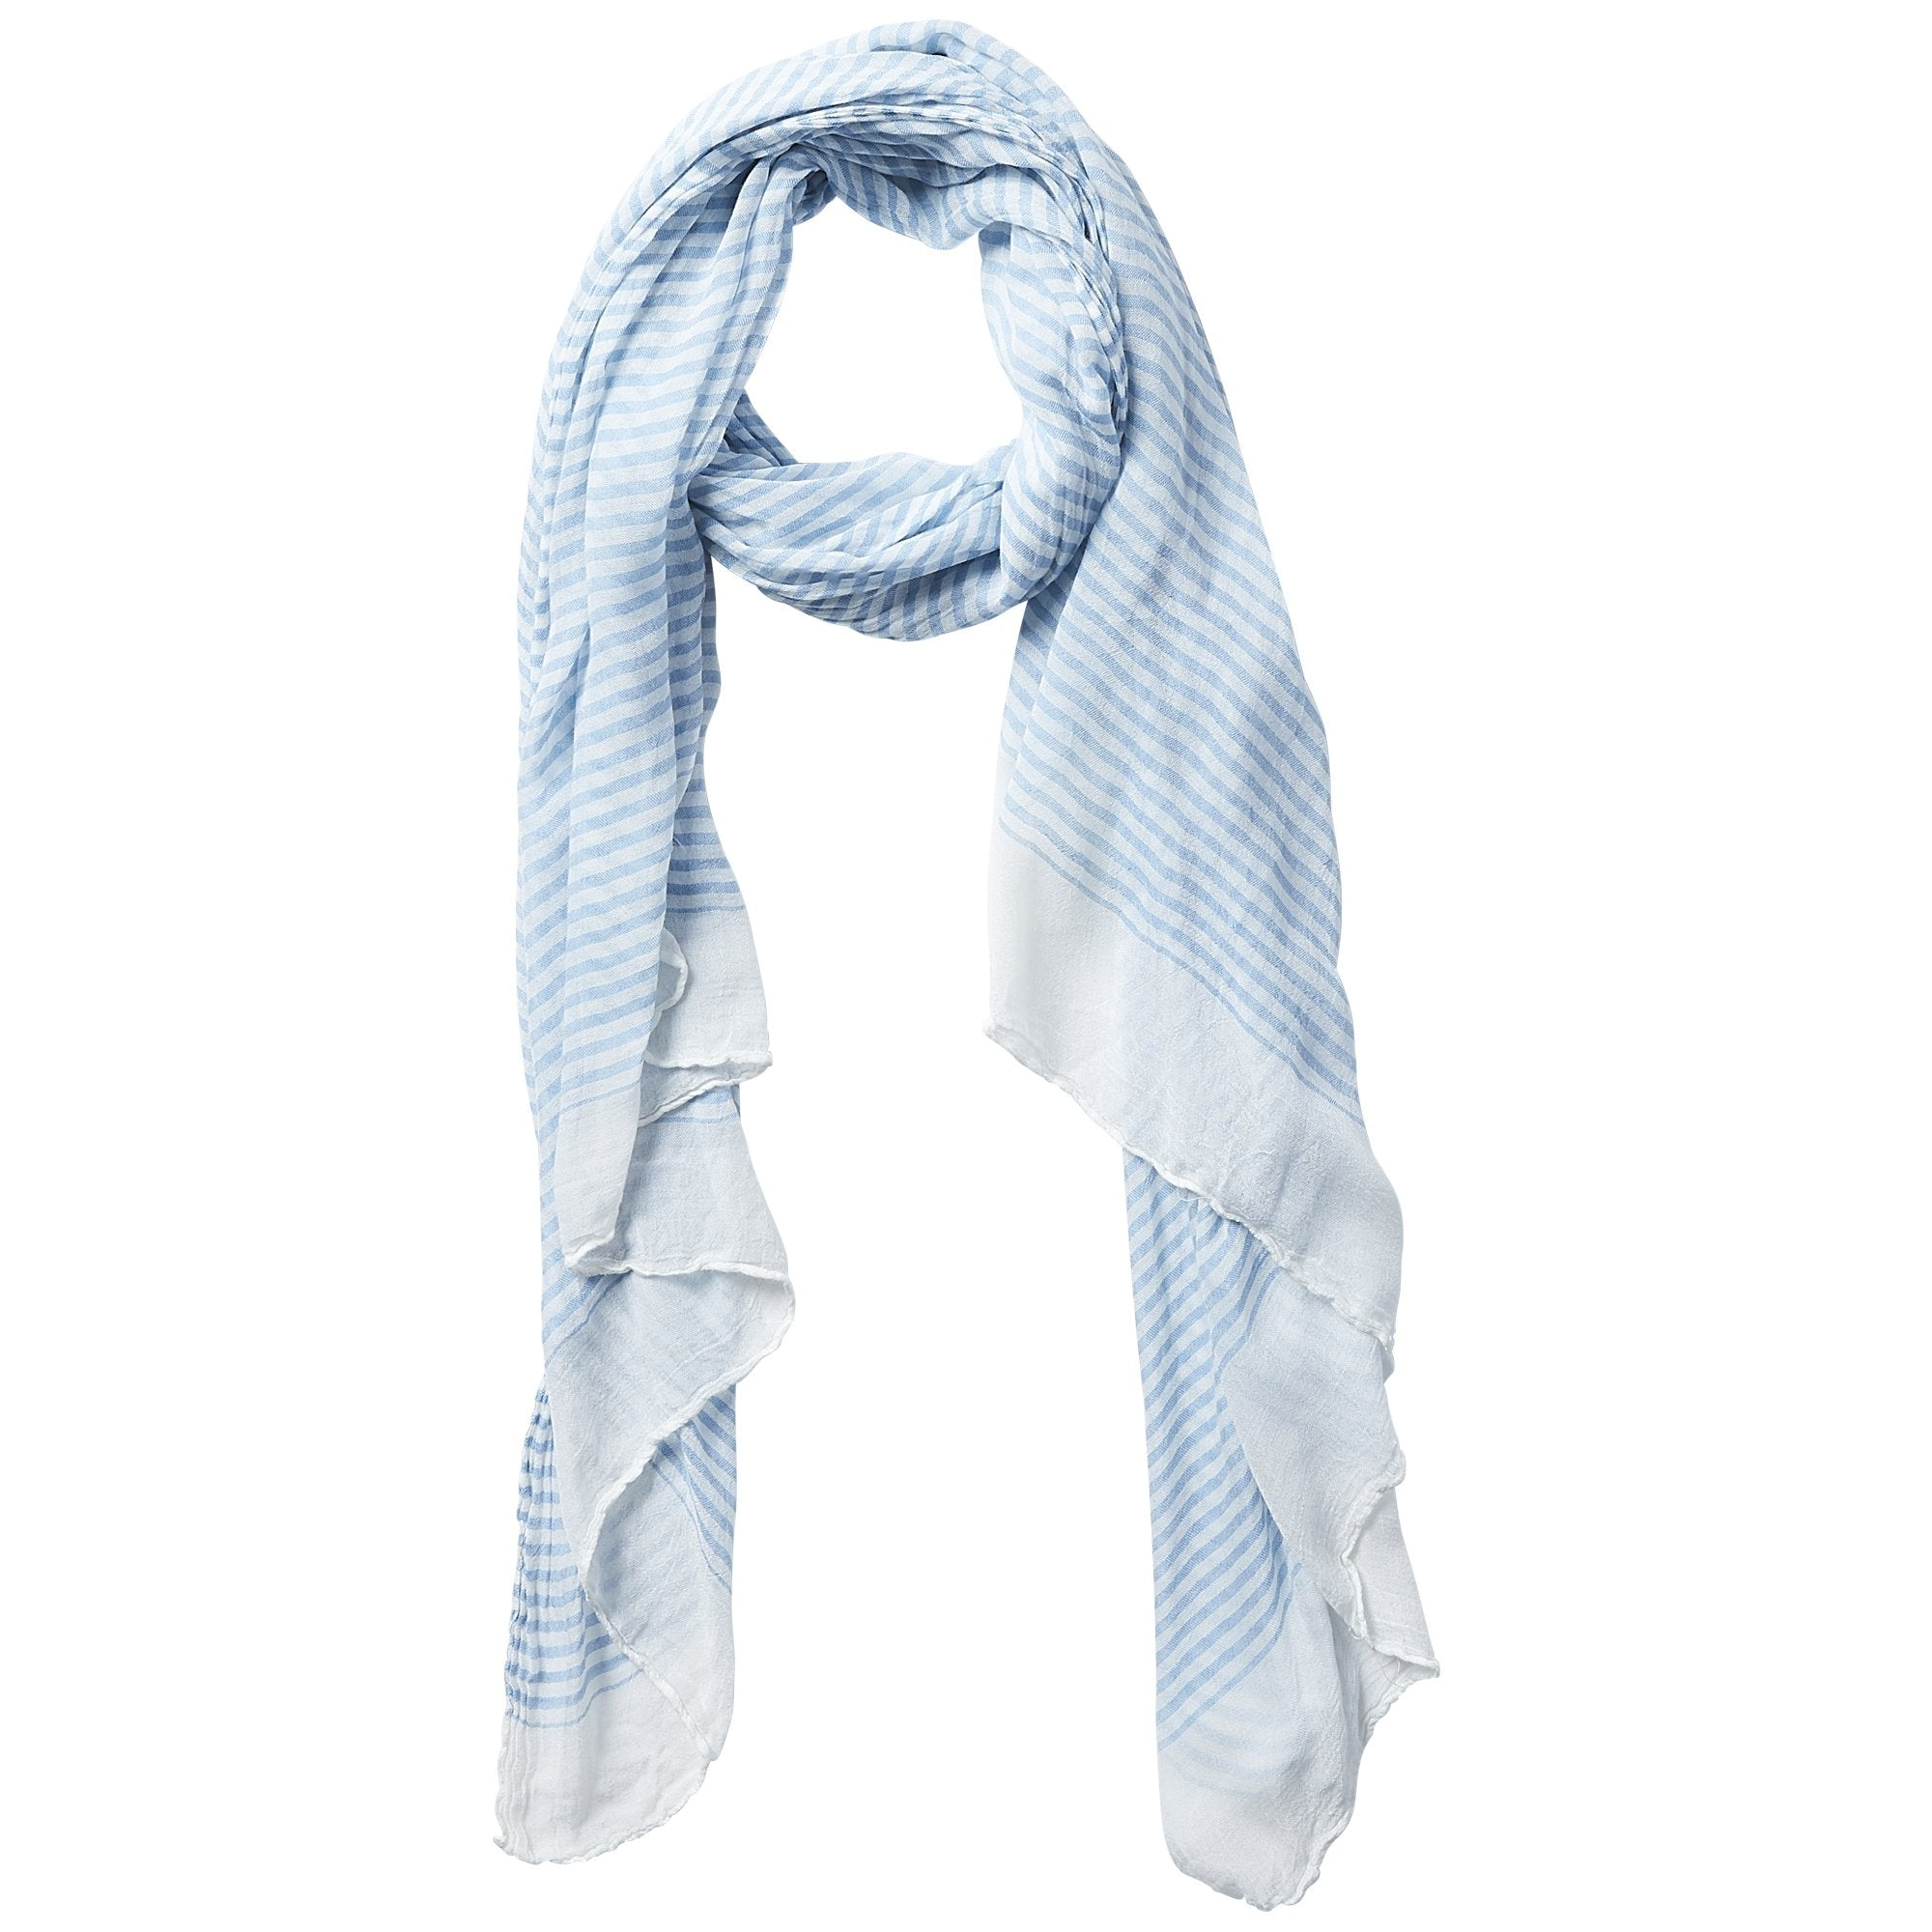 Insect Repellent Scarf - Blue Tiny Stripe